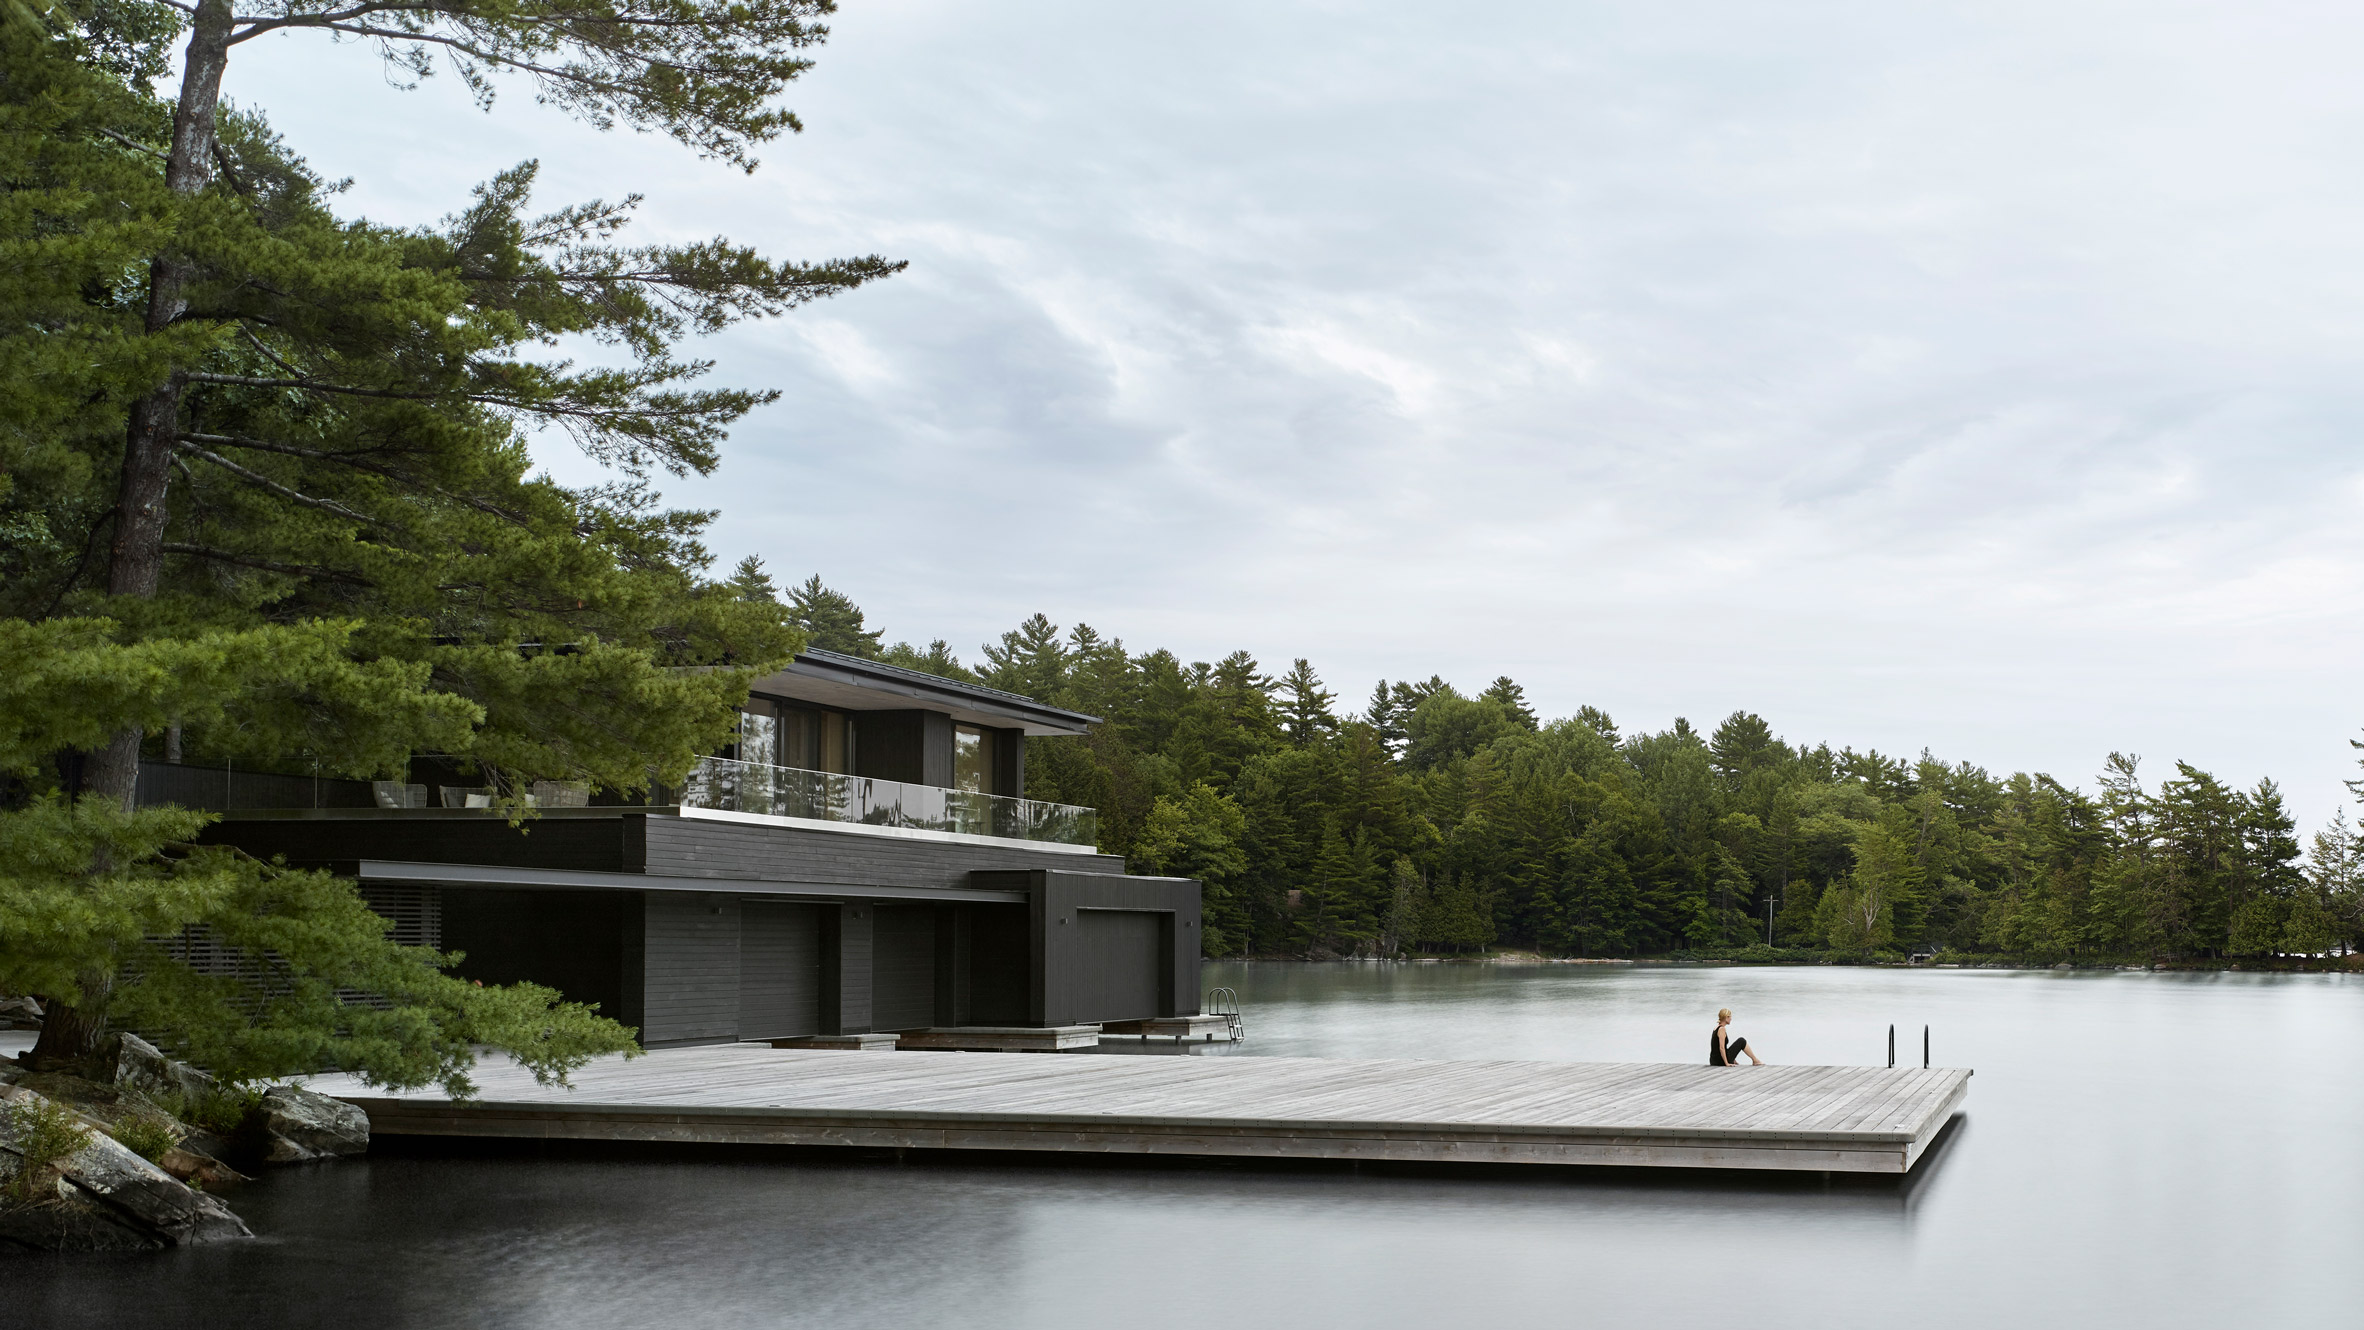 muskoka-boathouse-atelier-kastelic-buffey-ontario-lake-canada_dezeen_hero.jpg